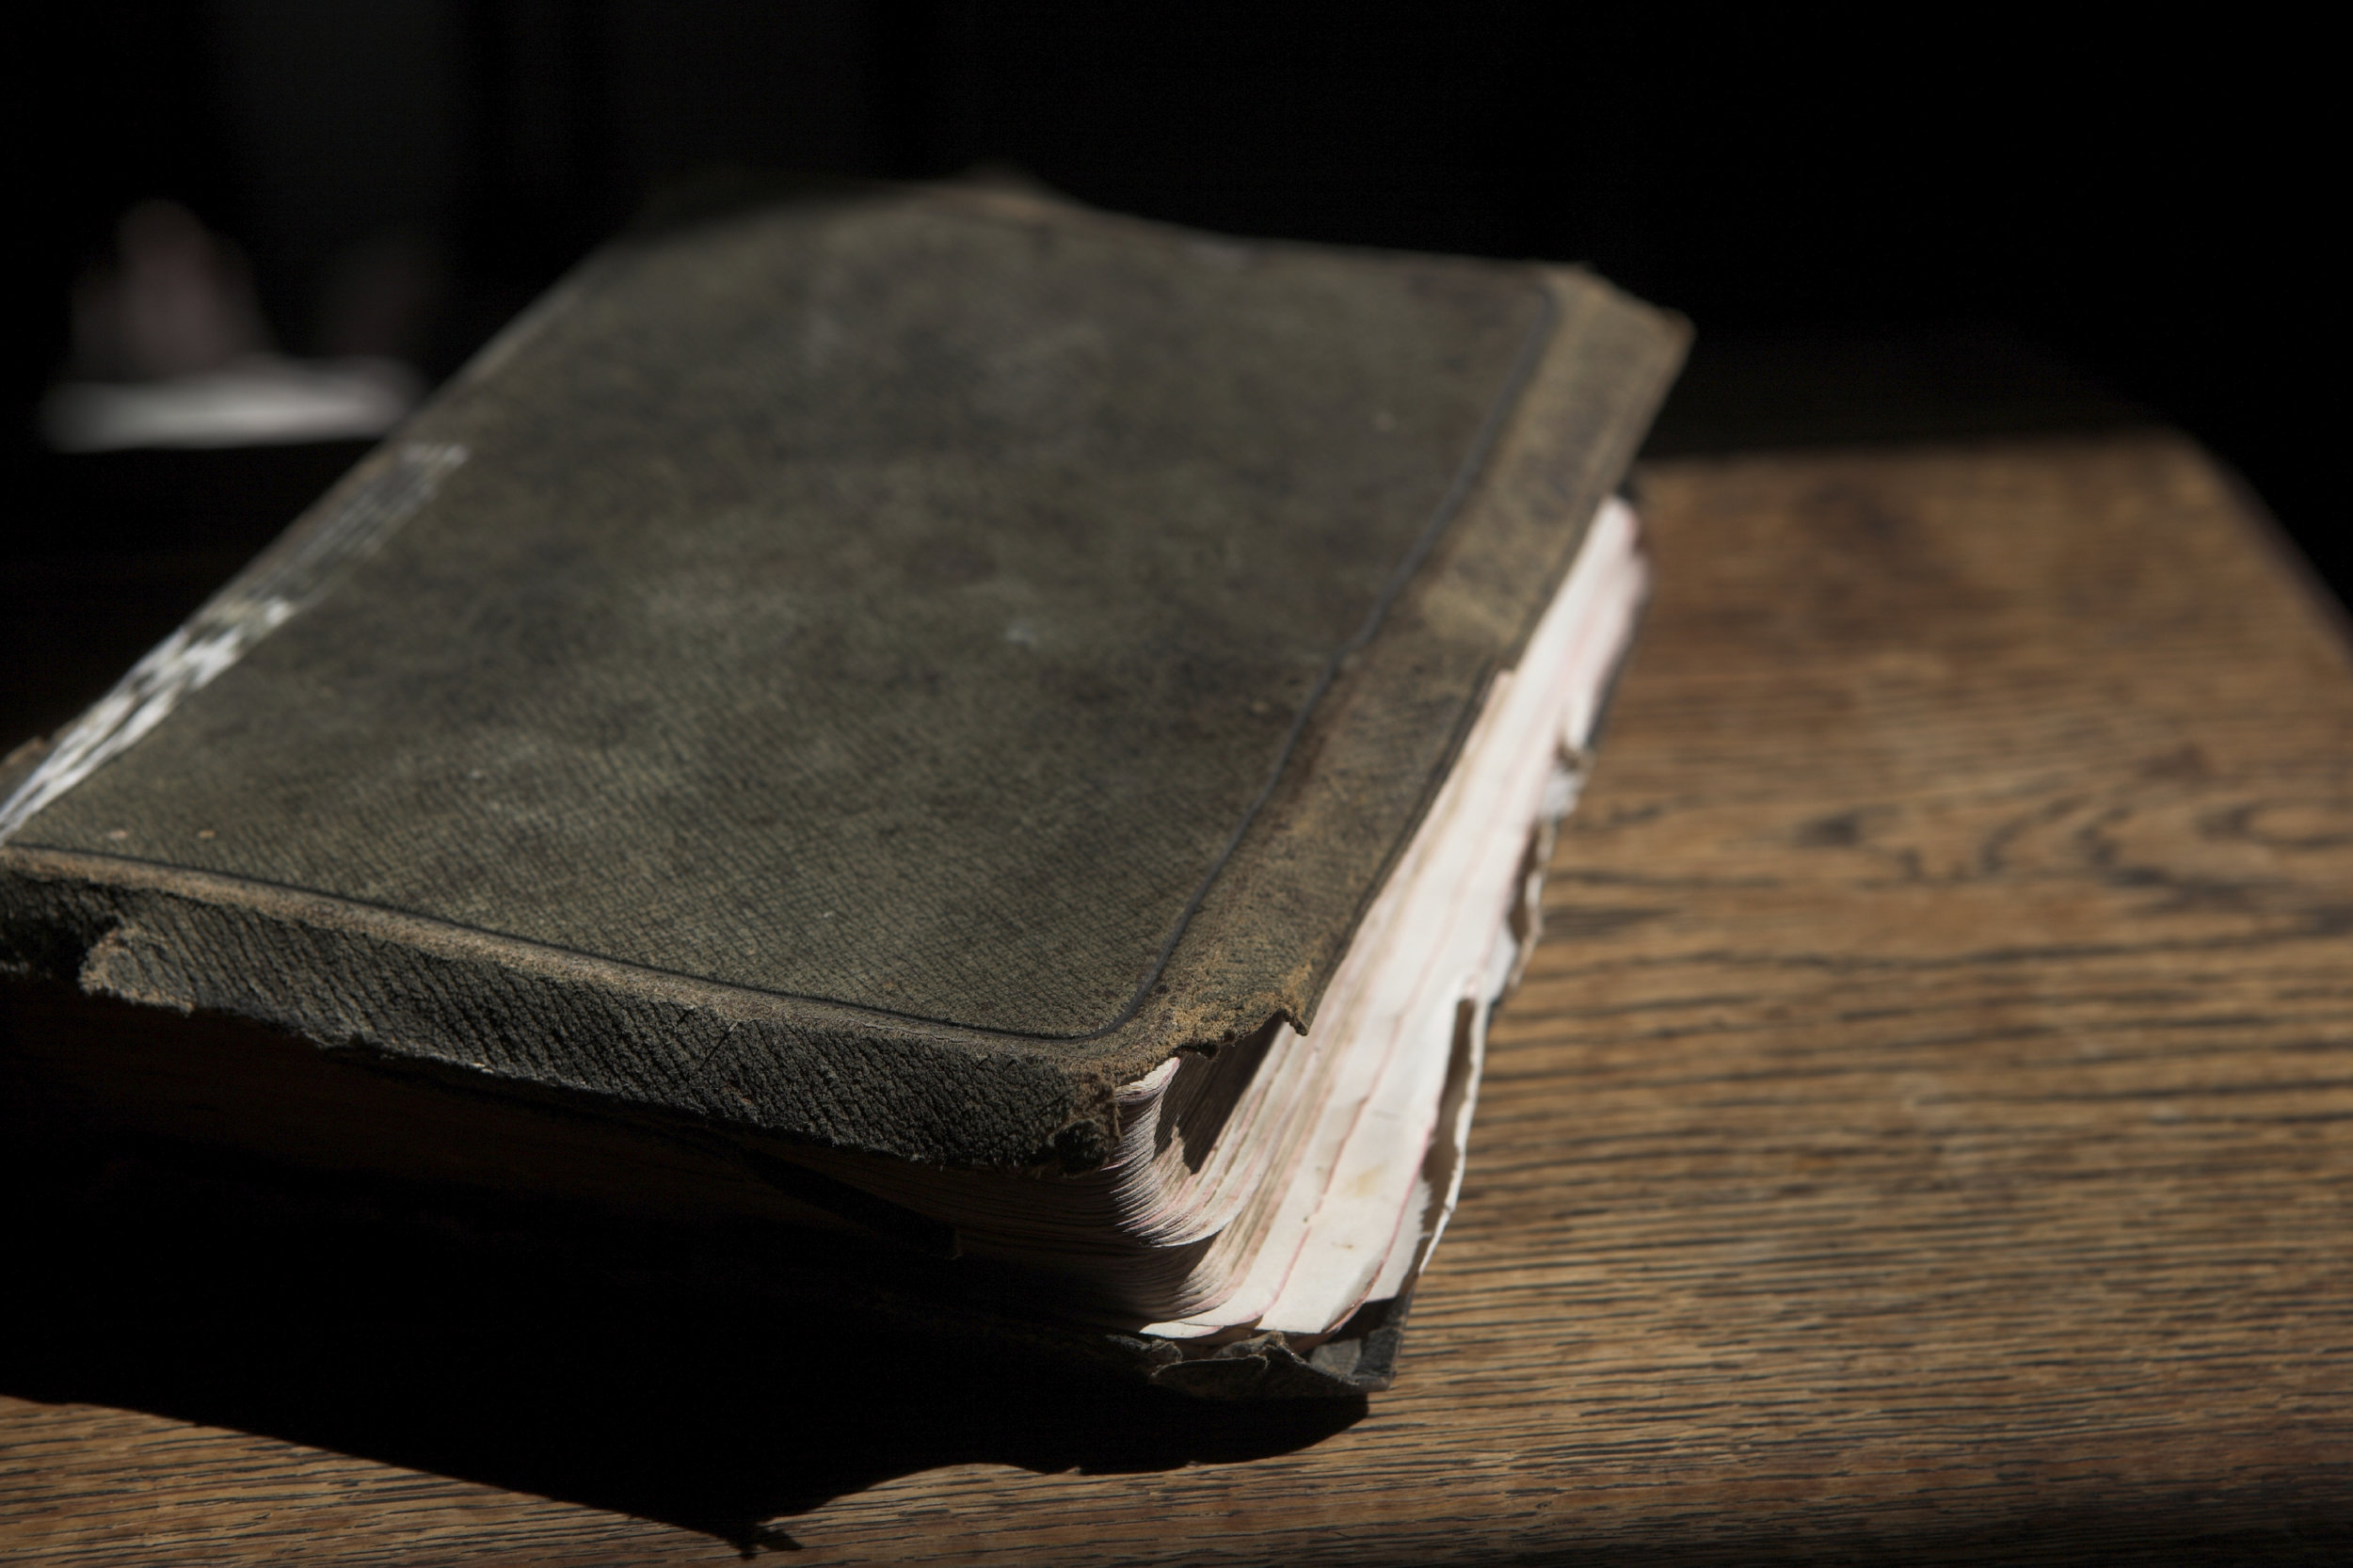 Leather covered bible lying on a table